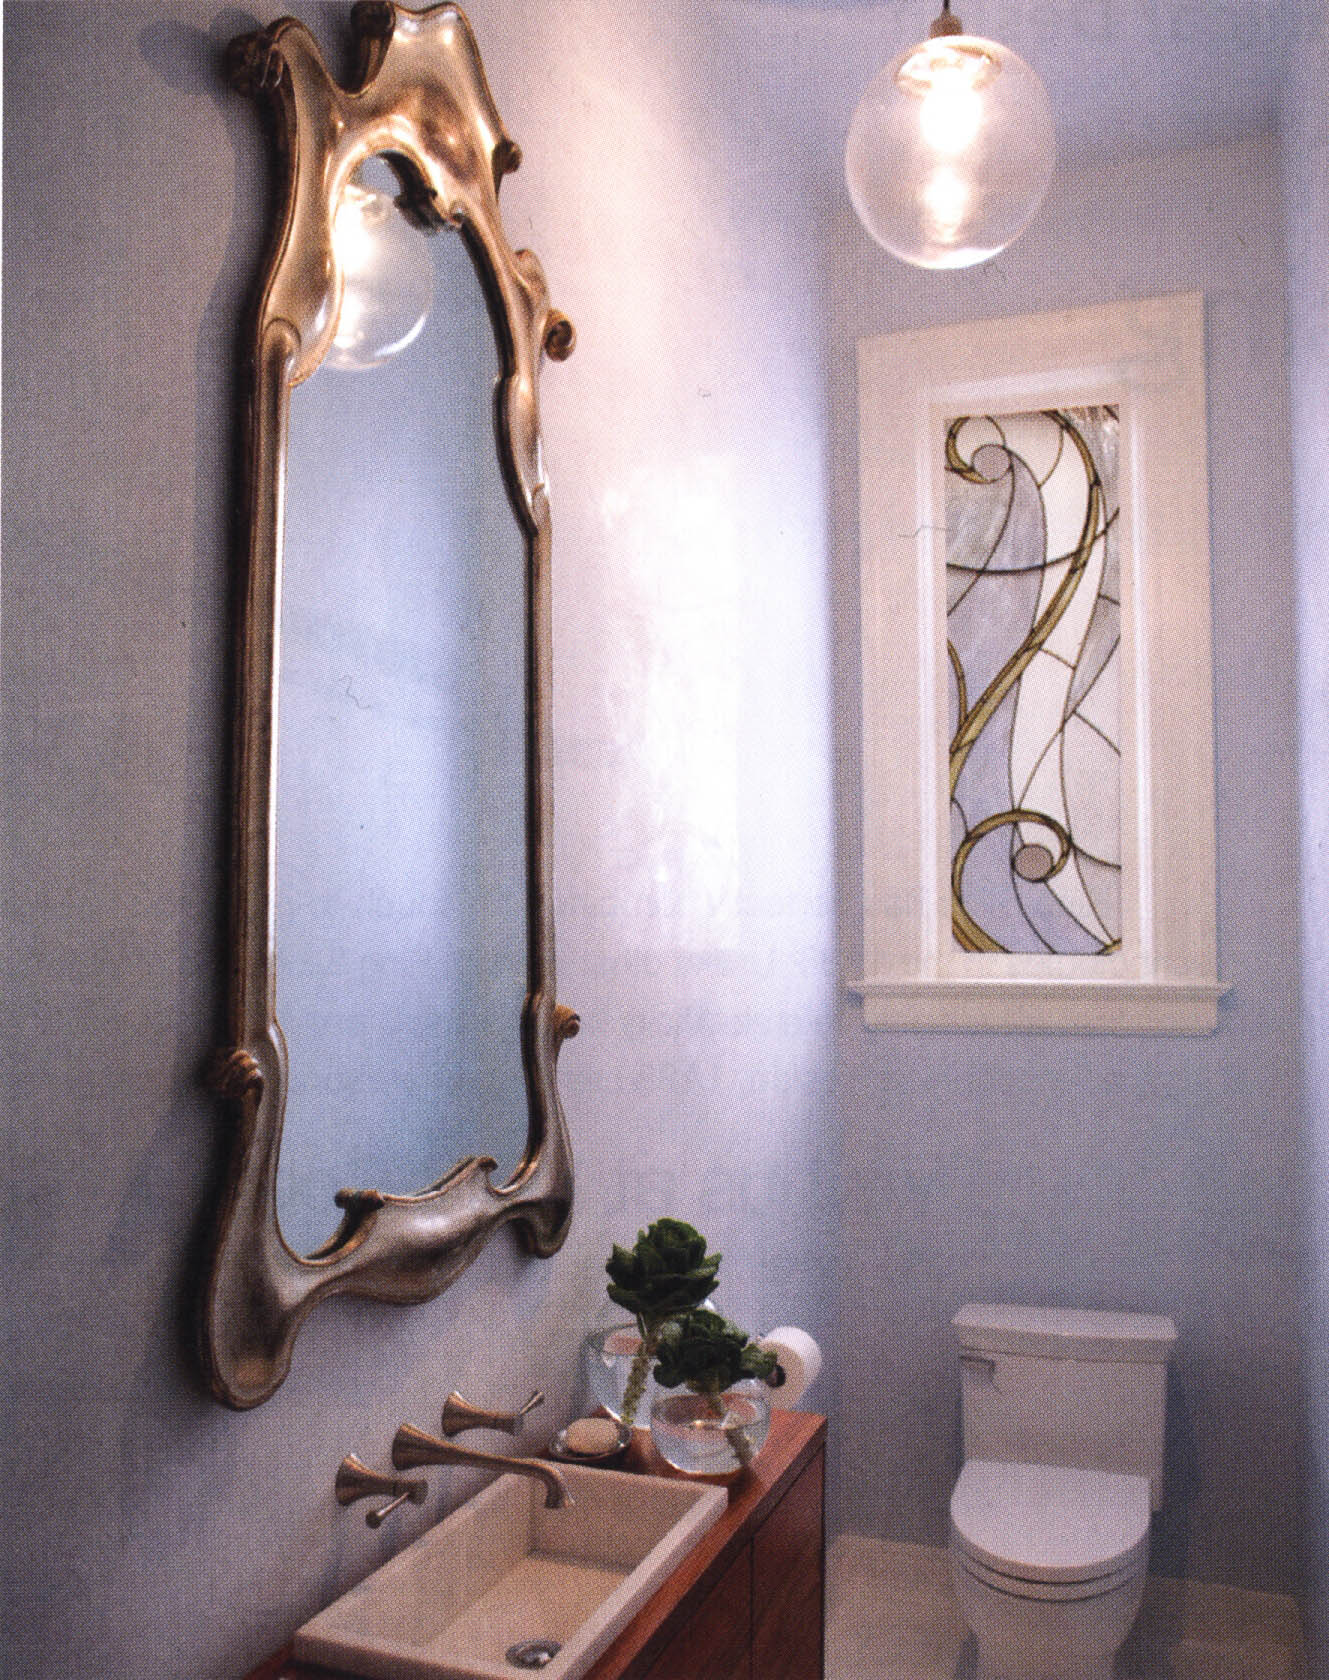 Bathroom a la art nouveau efedesigns for Art nouveau bathroom design